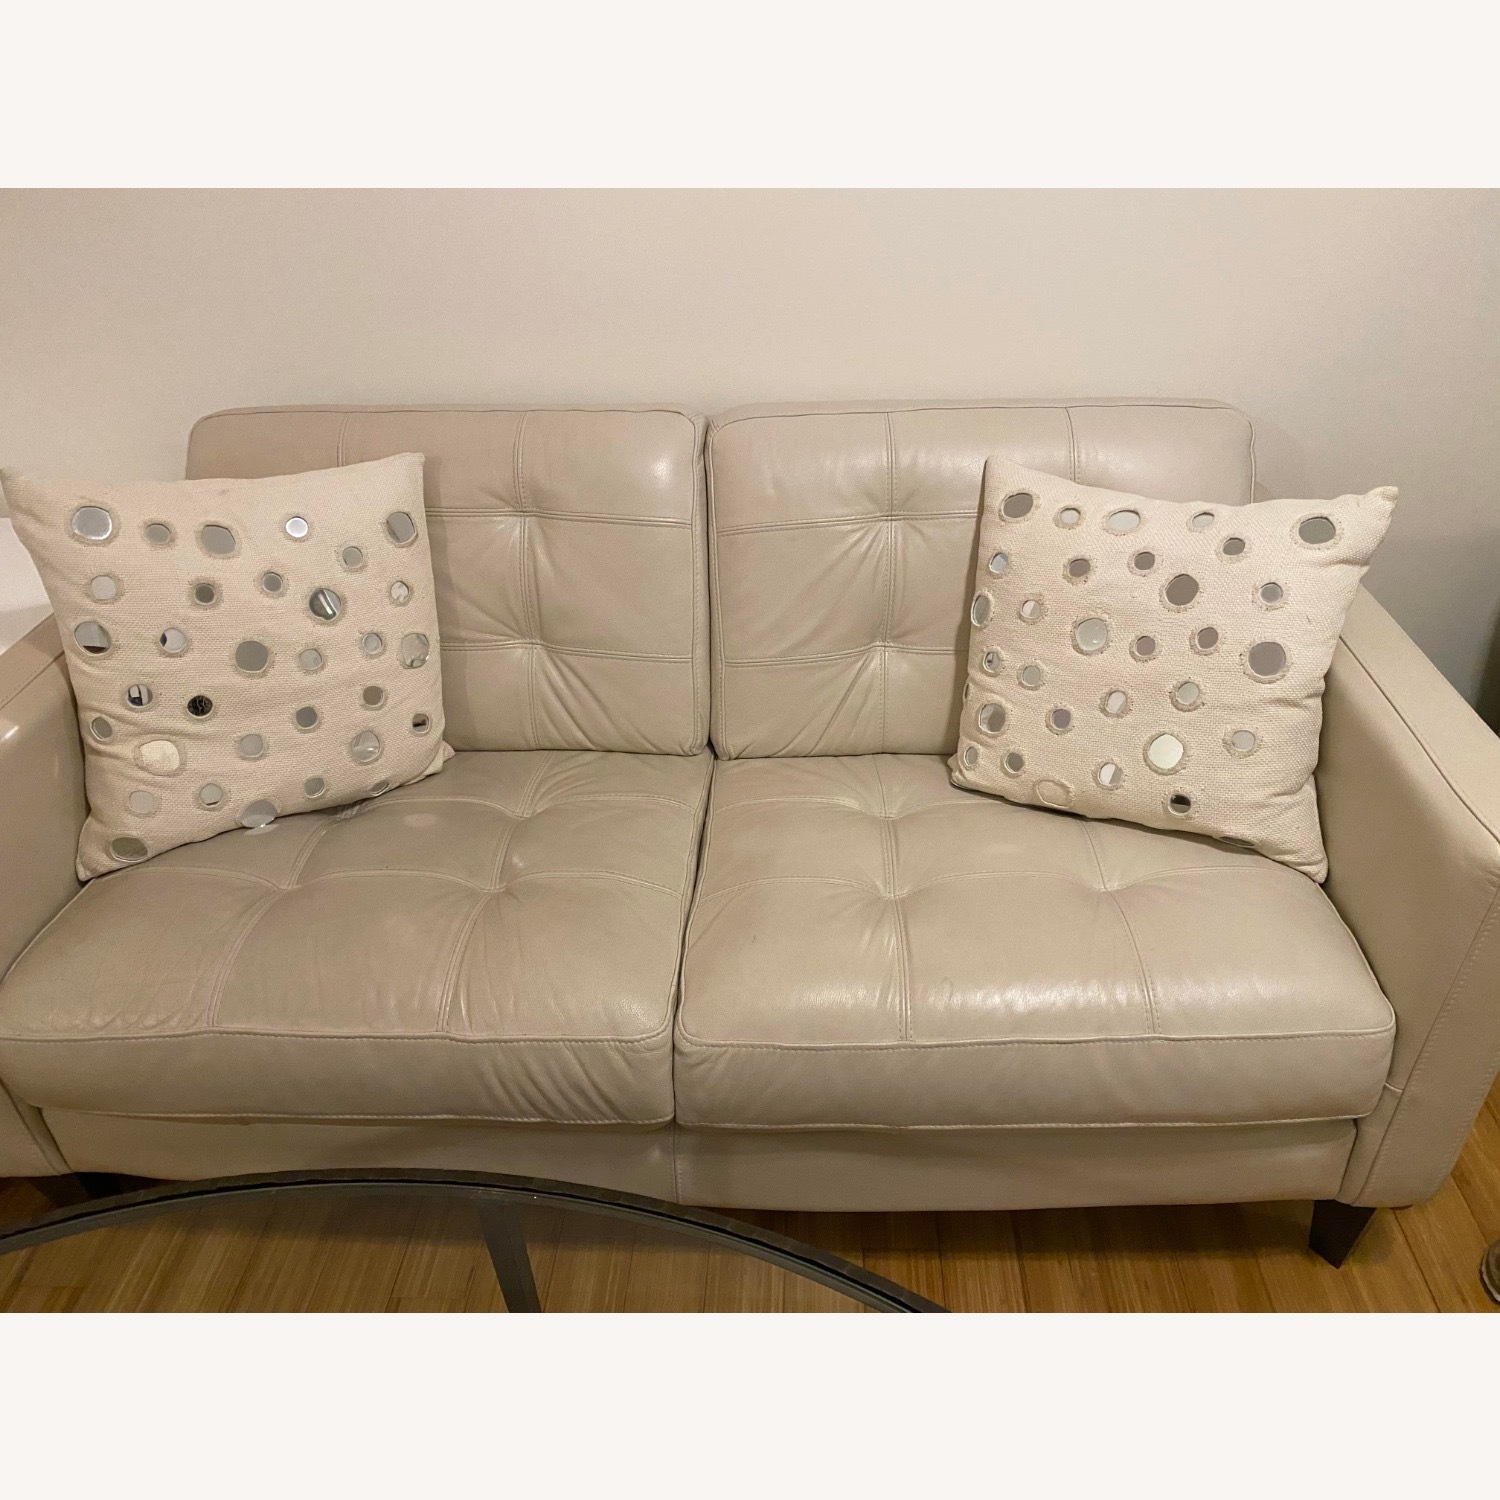 Macy's Leather Tufted Loveseat - image-5